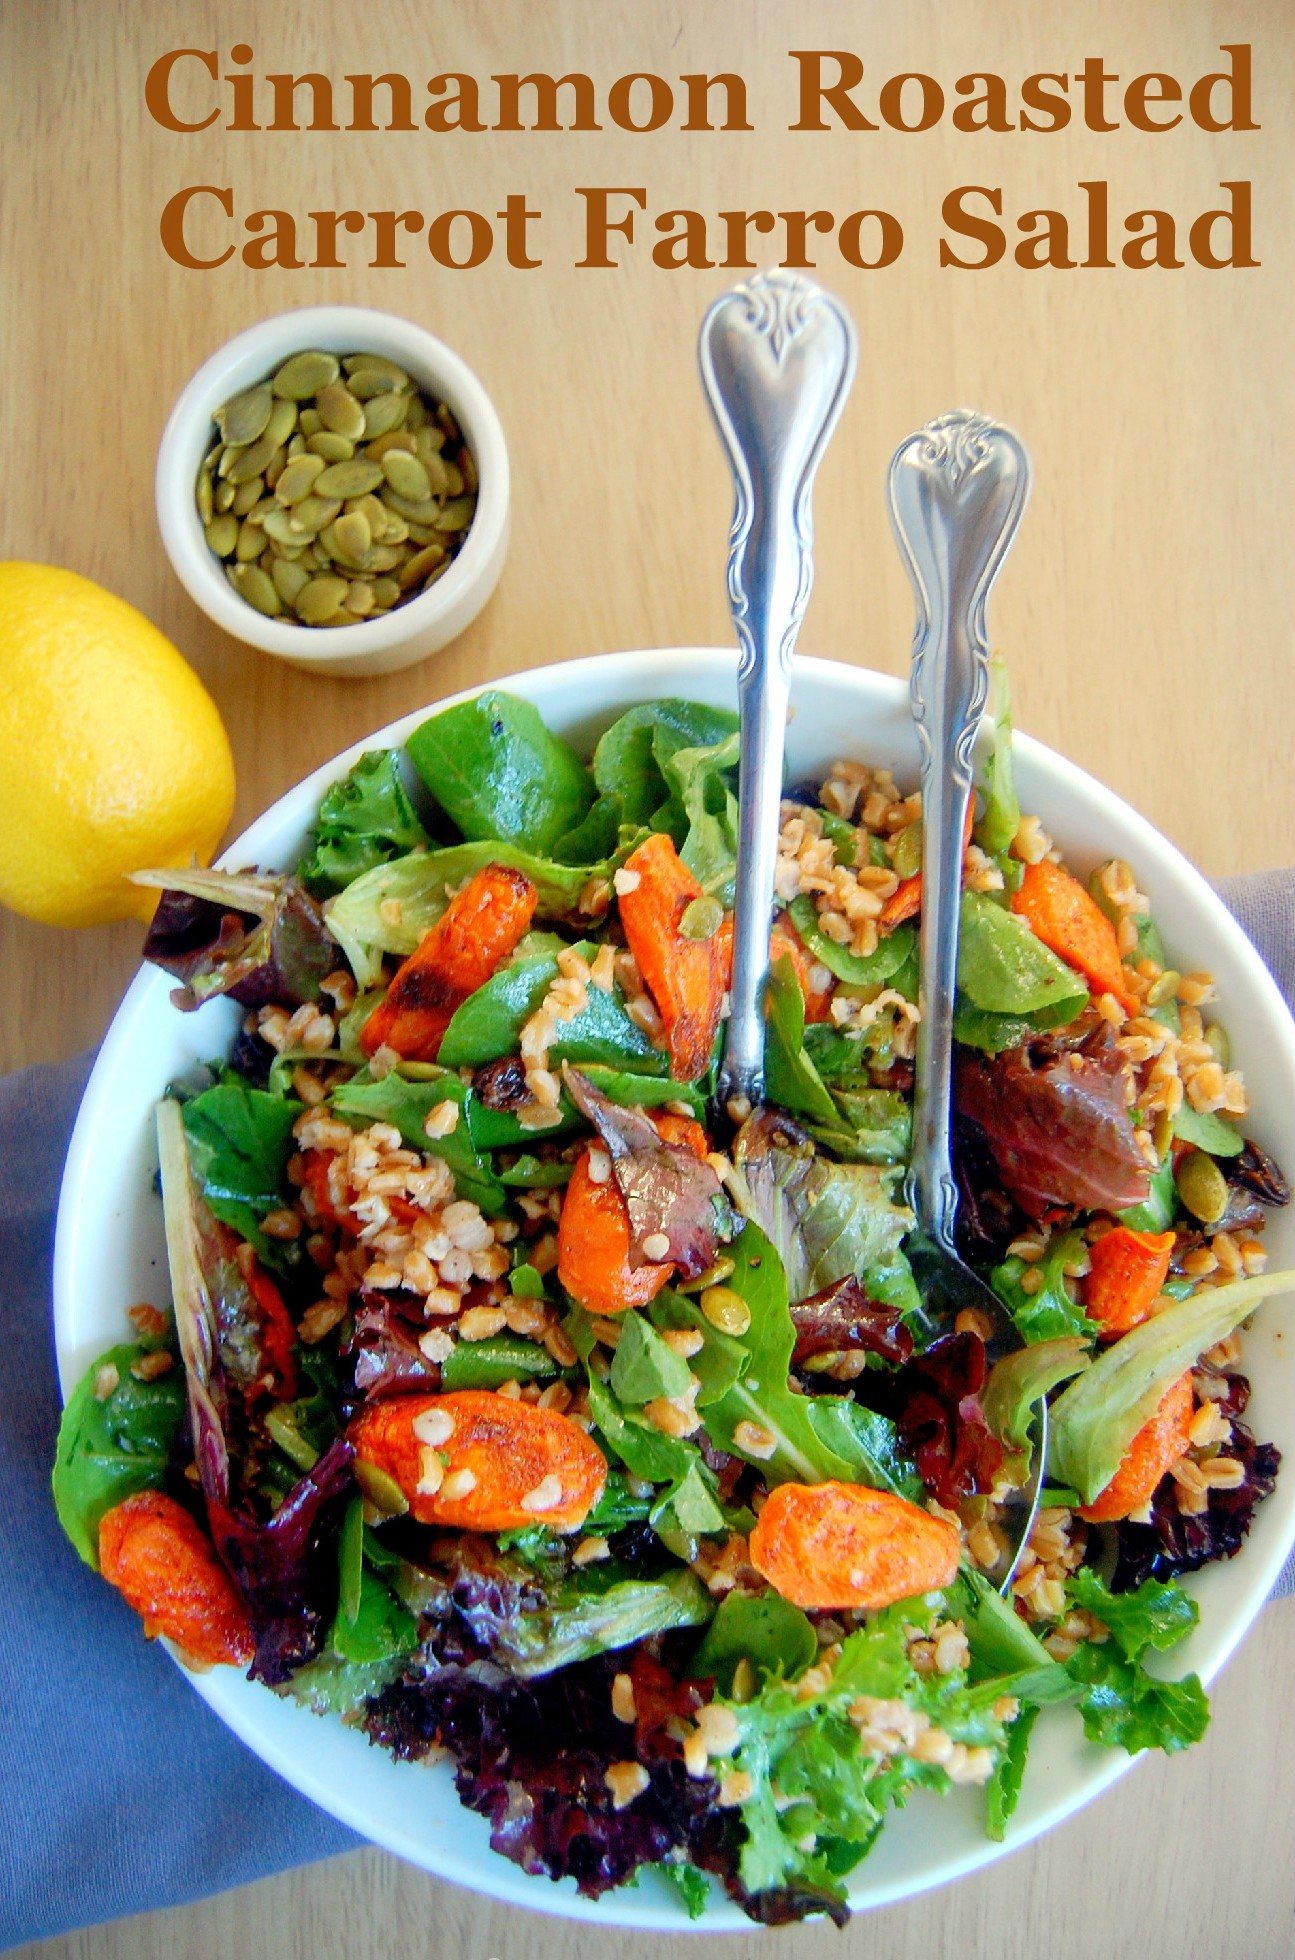 A perfect vegetarian main dish for fall, this Cinnamon Roasted Carrot Farro Salad combines sweet notes with savory fall flavors | uprootfromoregon.com